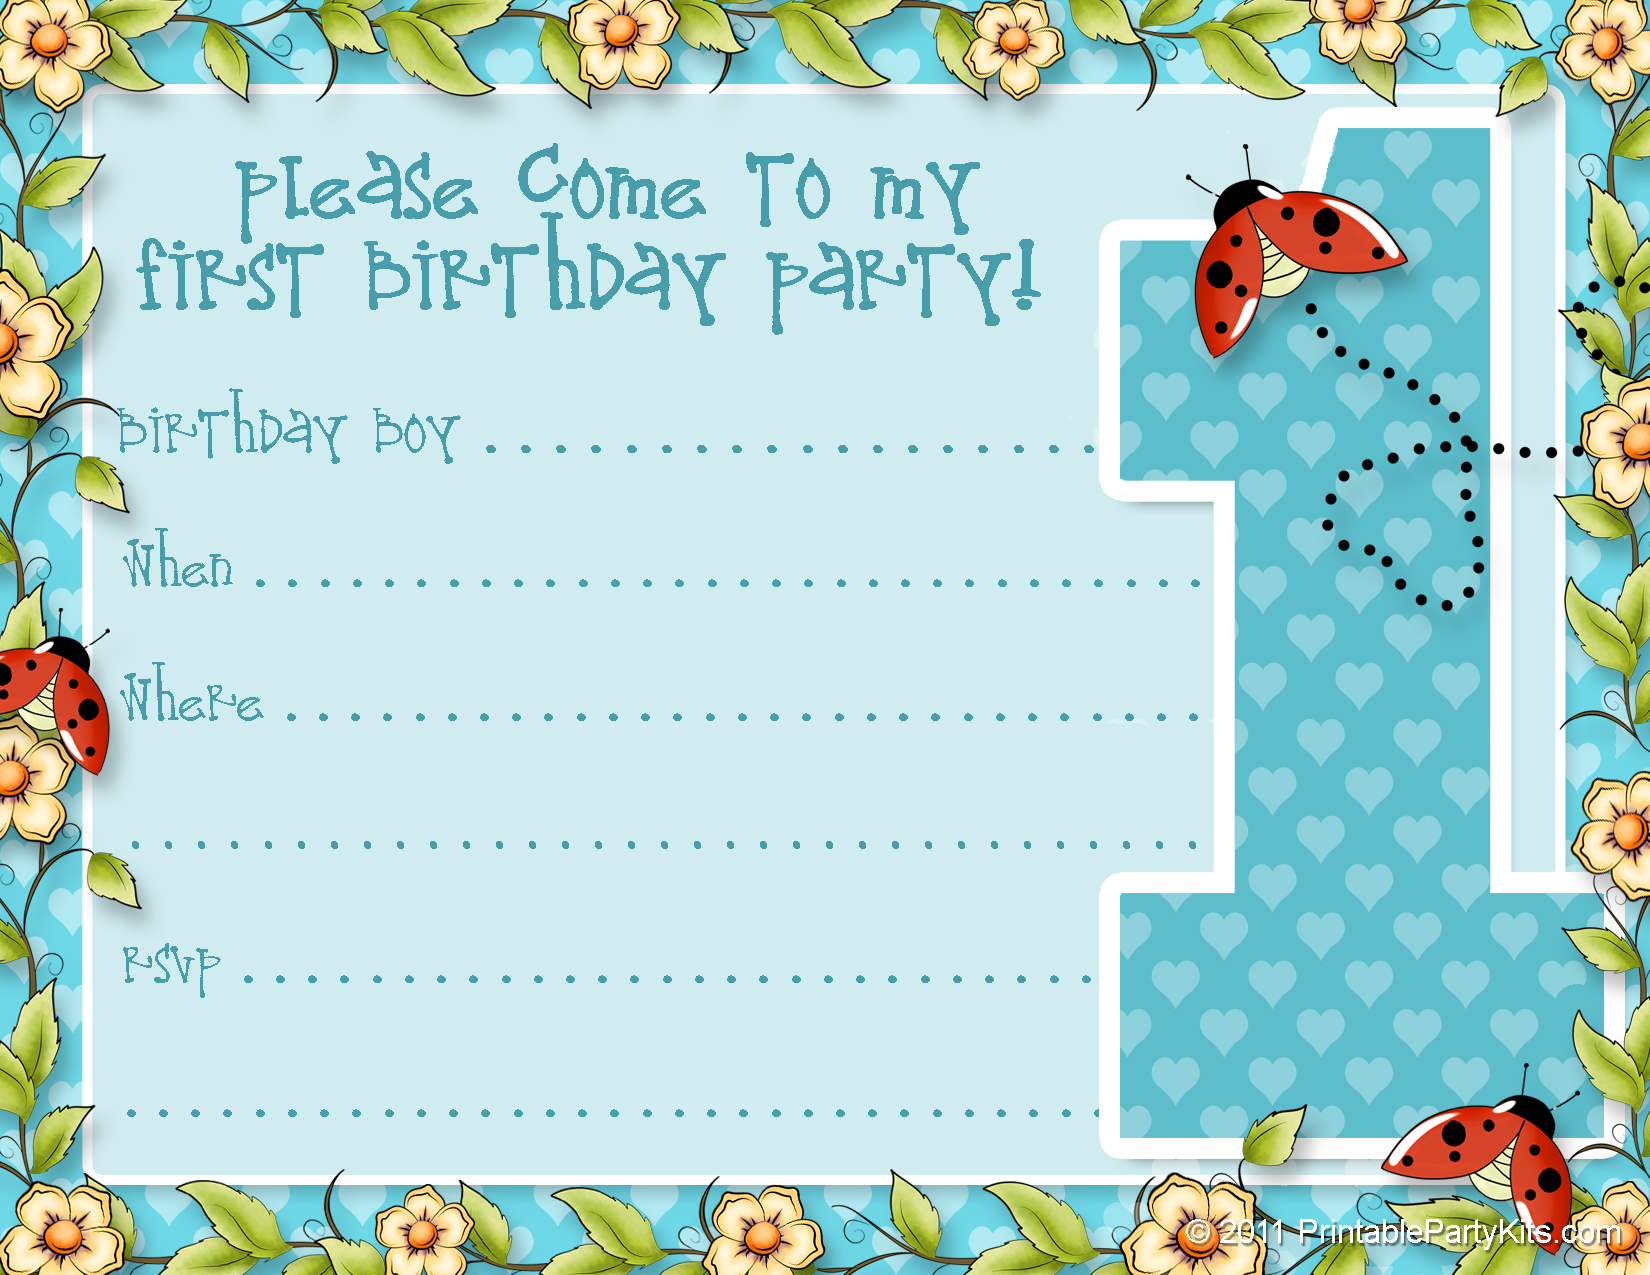 50 Free Birthday Invitation Templates You Will Love These – Printable Free Birthday Party Invitations